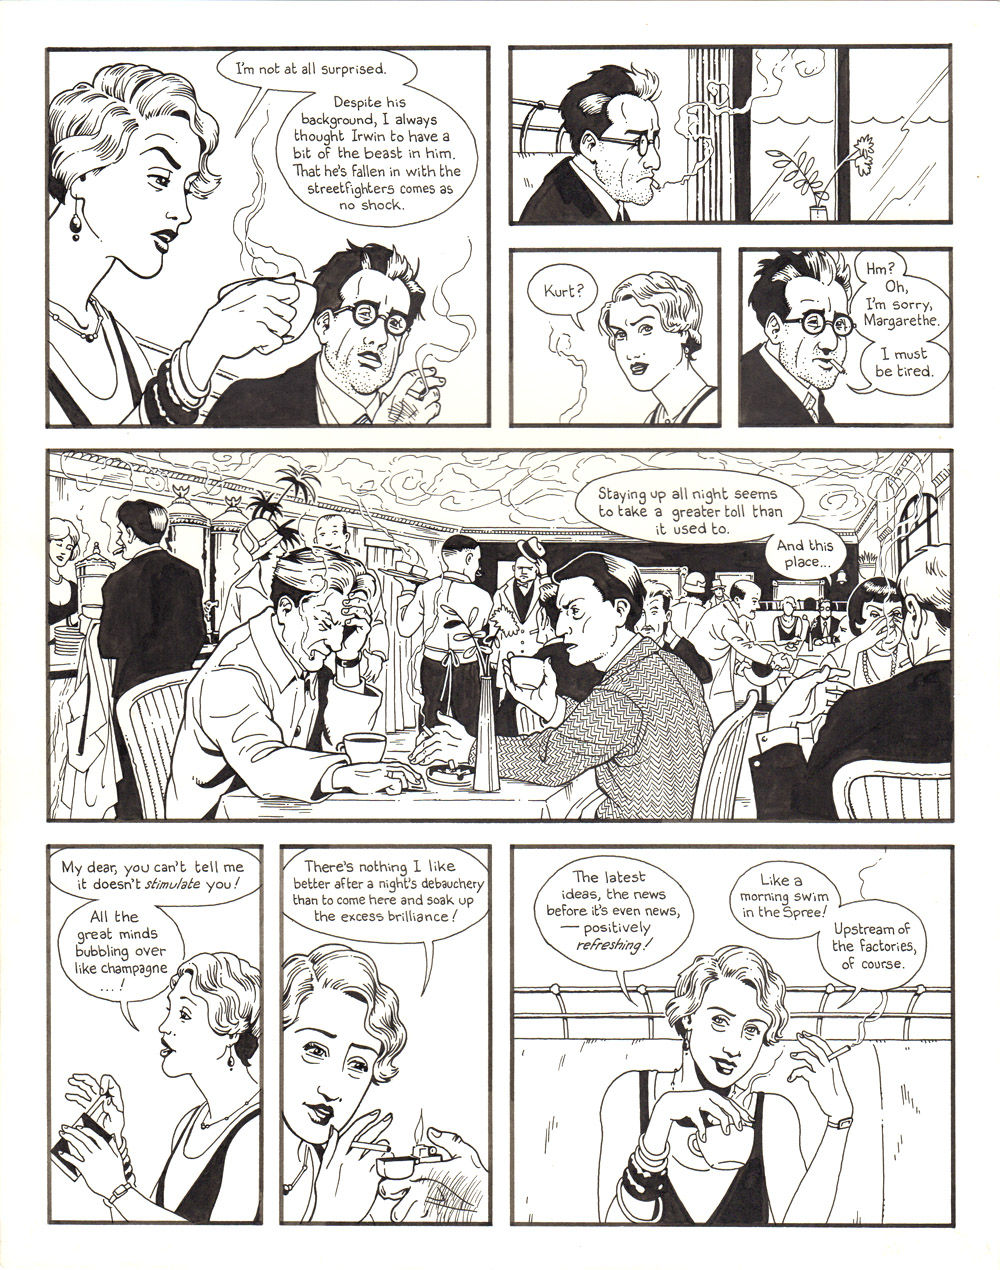 Berlin: Book 1 - Page 065